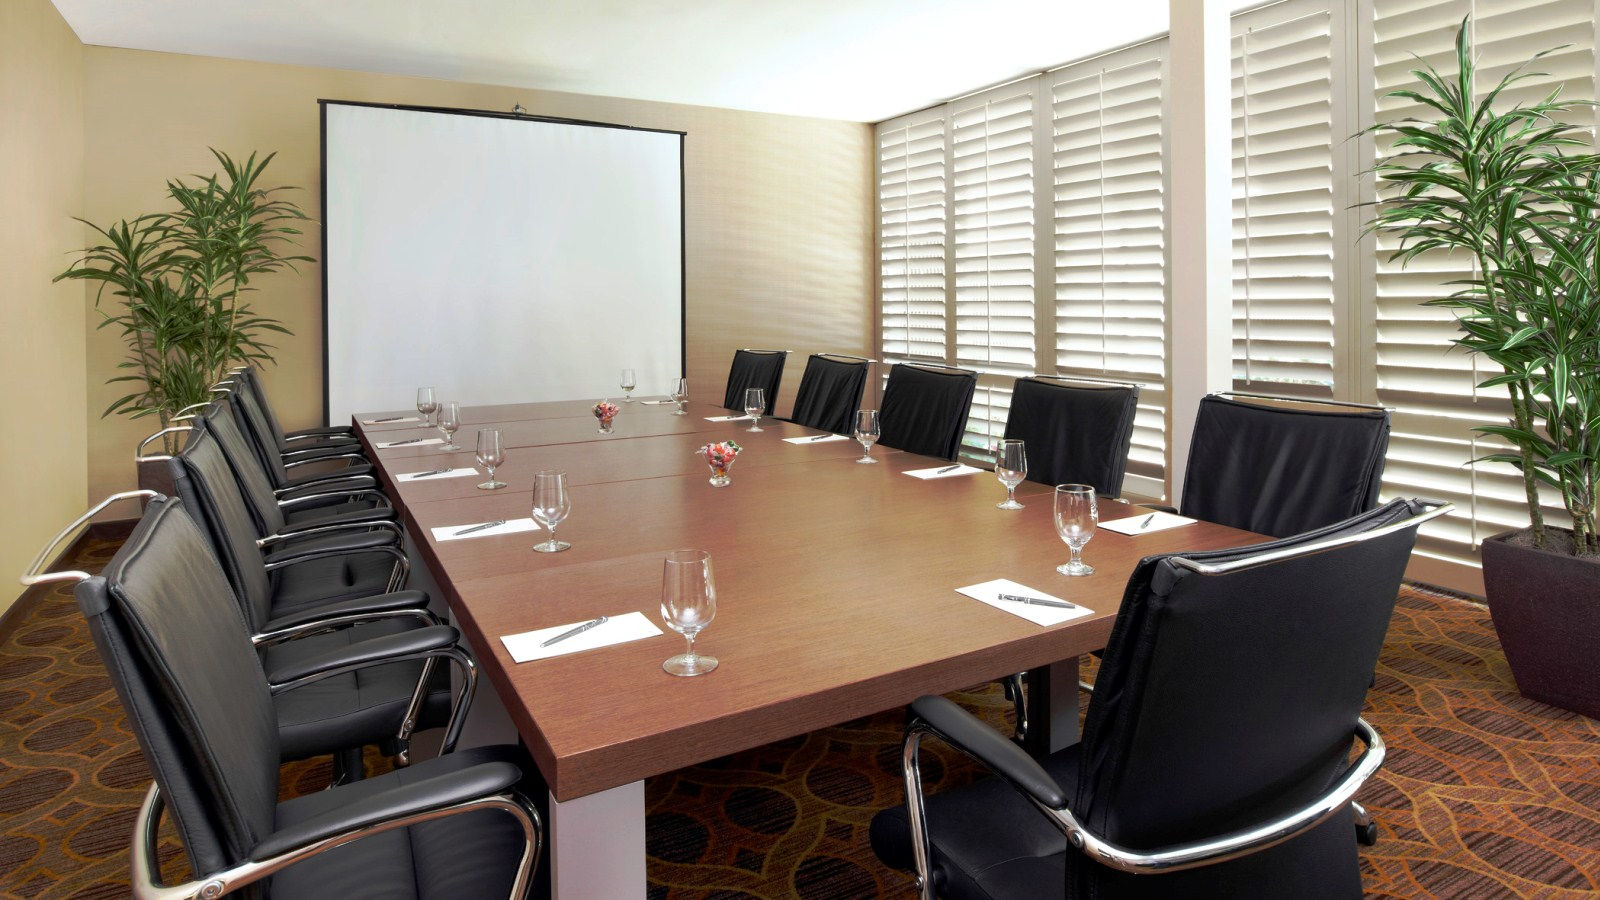 Our small meeting space in Pleasanton offers natural lighting and complimentary high-speed Wi-Fi.